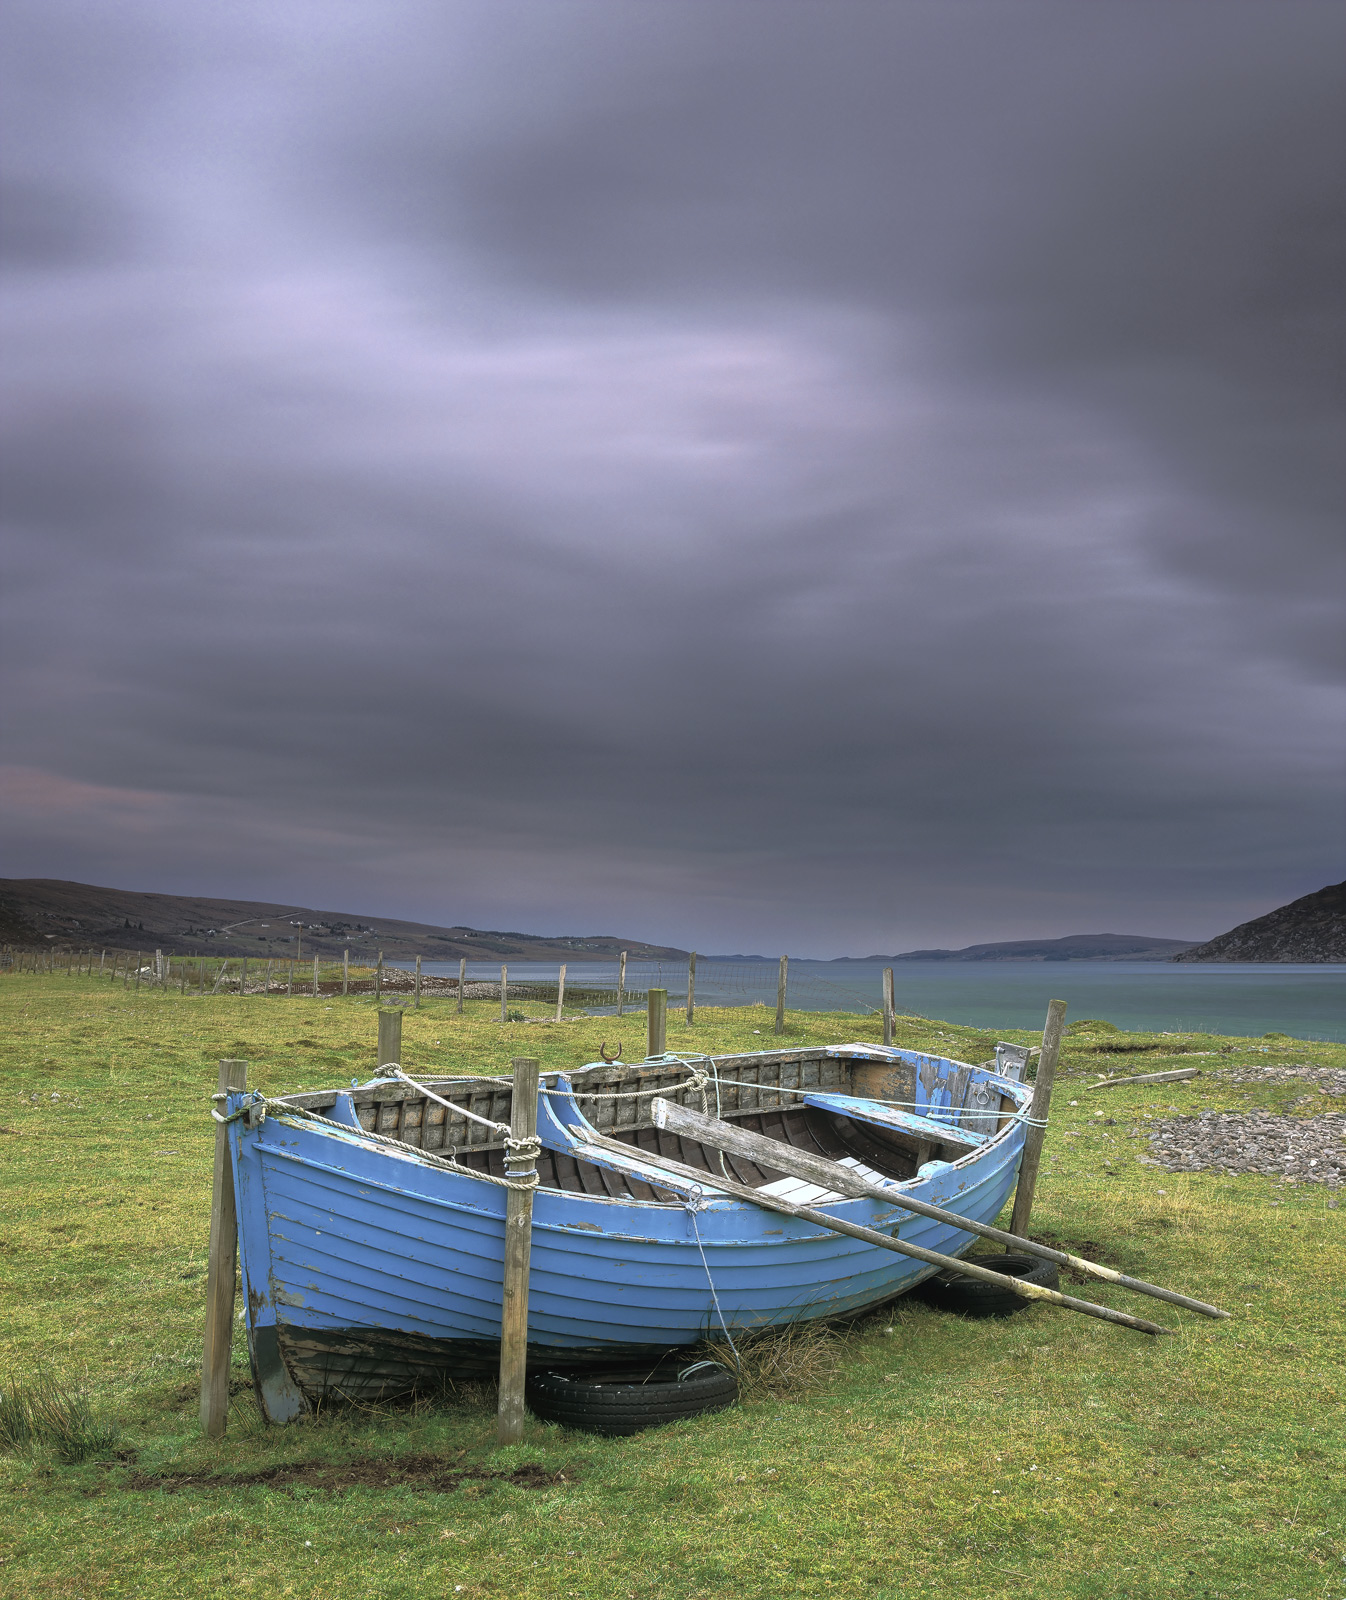 This little blue boat has been tied up out here for a good long while I suppose it will be refloated again in the summertime...